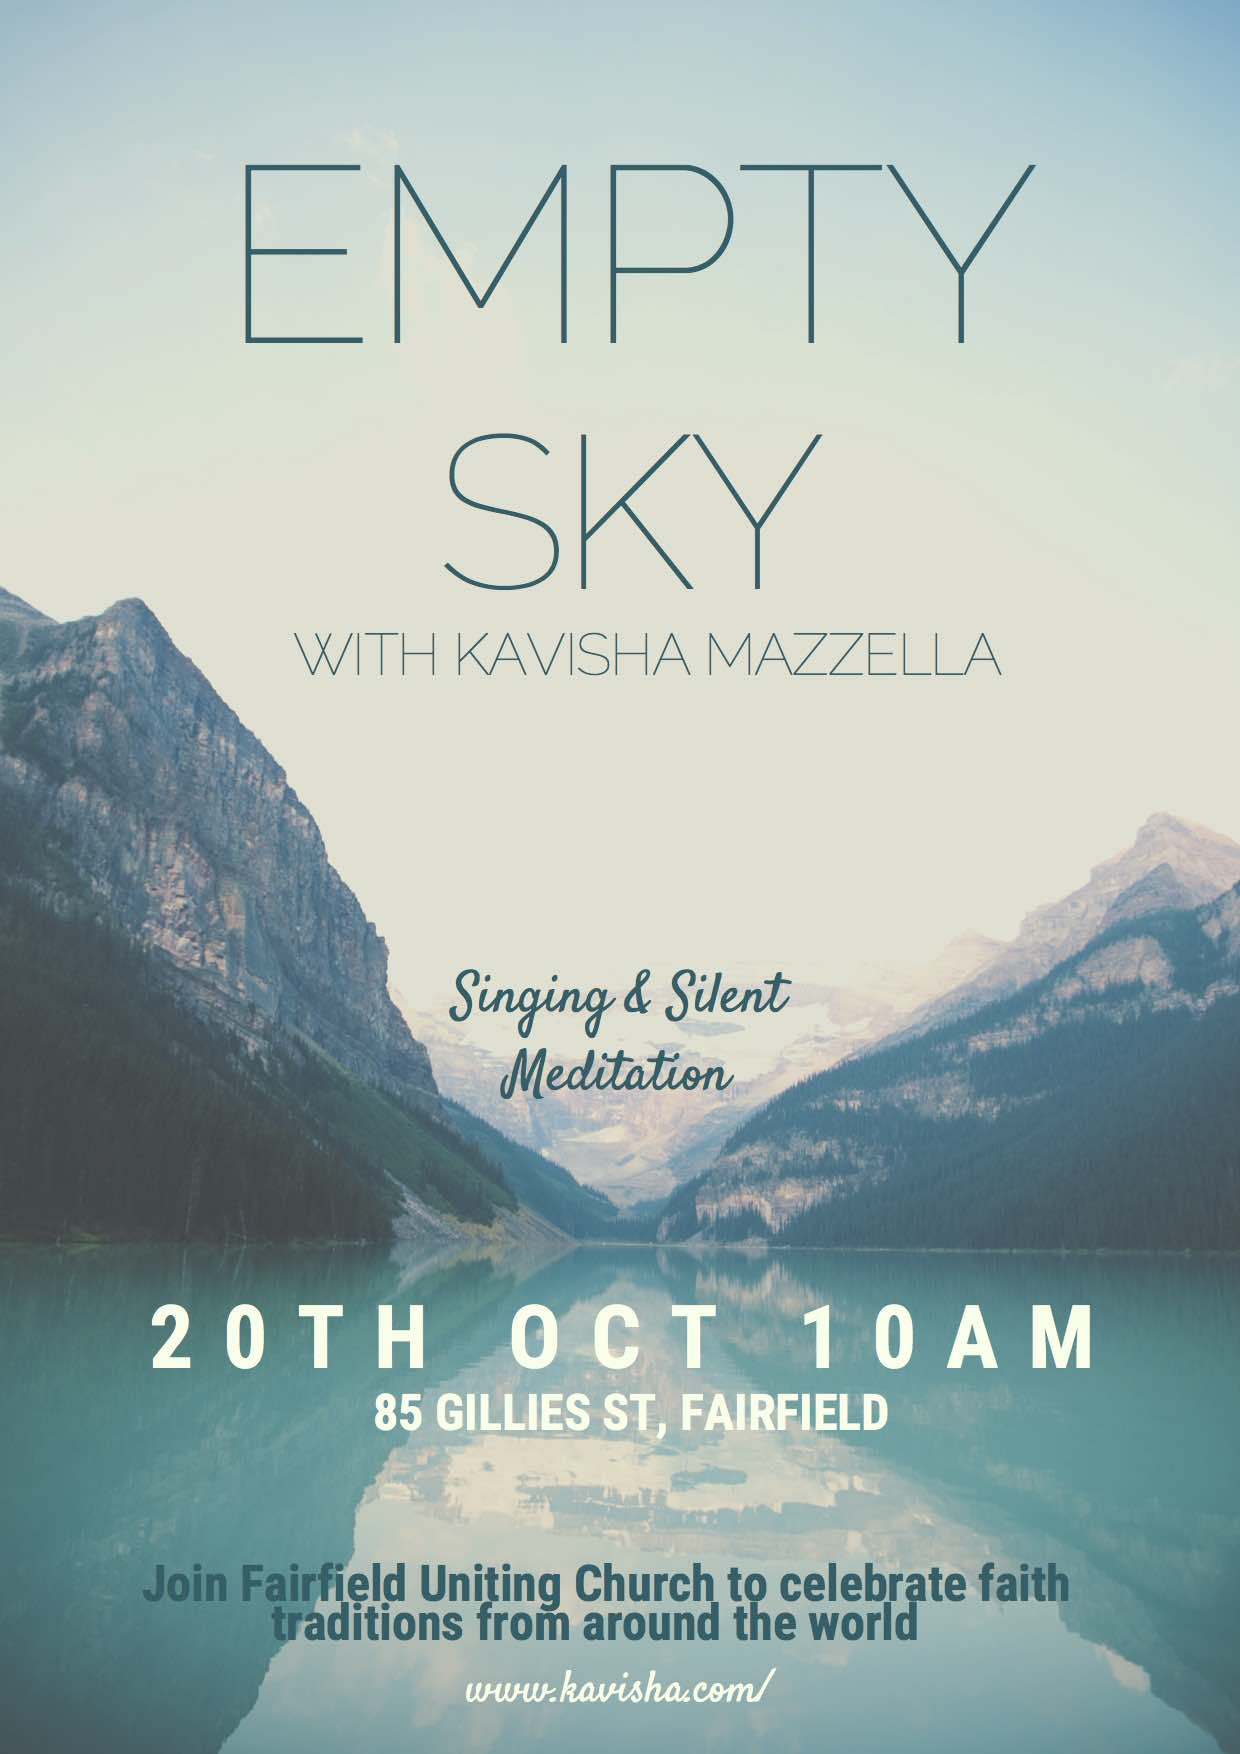 Empty%20Sky%20Meditation%2020th%20Oct%20